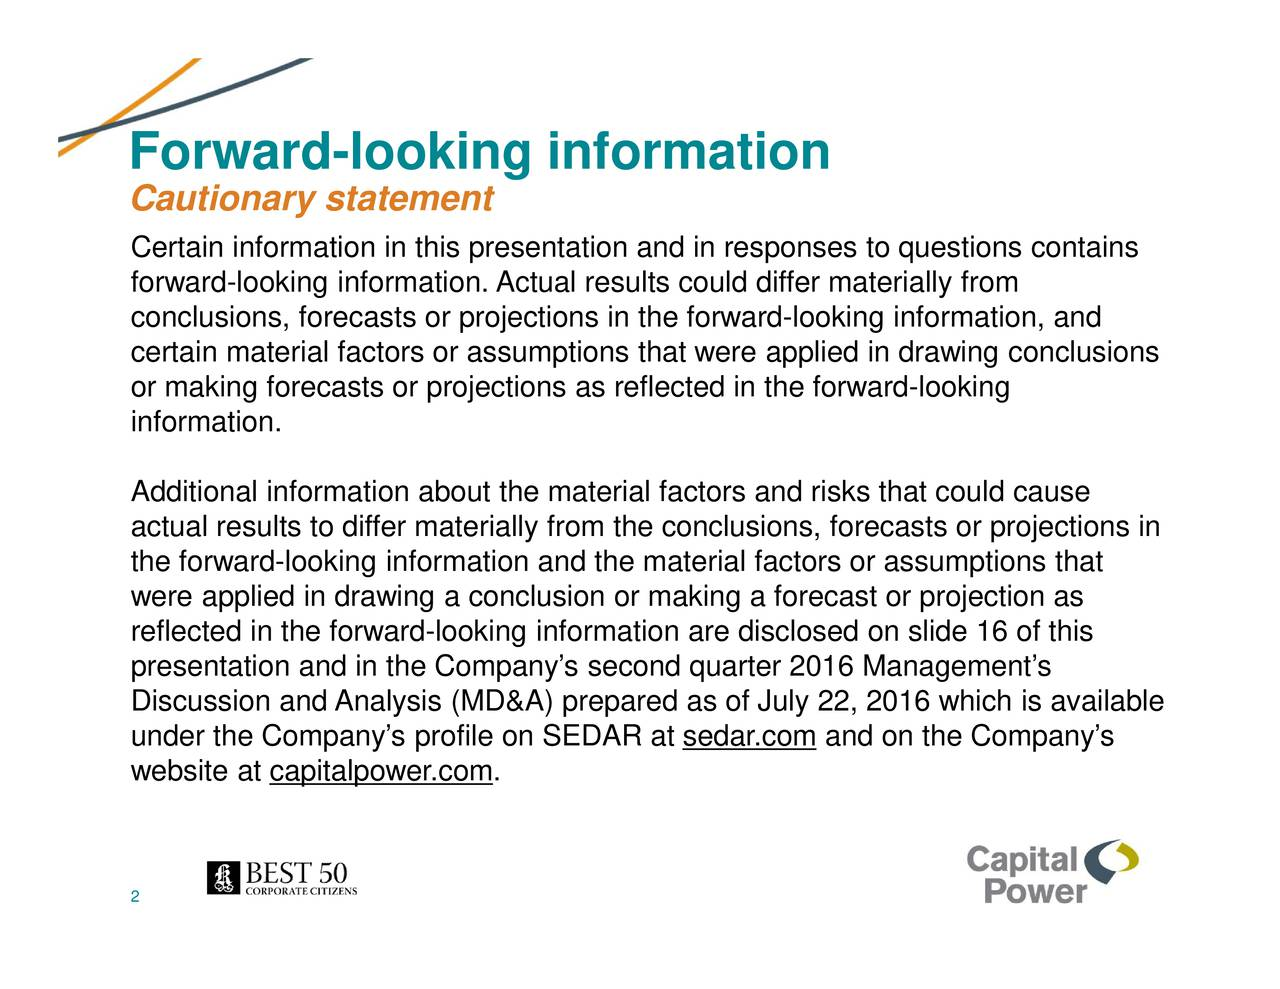 Cautionary statement Certain information in this presentation and in responses to questions contains forward-looking information. Actual results could differ materially from conclusions, forecasts or projections in the forward-looking information, and certain material factors or assumptions that were applied in drawing conclusions or making forecasts or projections as reflected in the forward-looking information. Additional information about the material factors and risks that could cause actual results to differ materially from the conclusions, forecasts or projections in the forward-looking information and the material factors or assumptions that were applied in drawing a conclusion or making a forecast or projection as reflected in the forward-looking information are disclosed on slide 16 of this presentation and in the Companys second quarter 2016 Managements Discussion and Analysis (MD&A) prepared as of July 22, 2016 which is available under the Companys profile on SEDAR at sedar.com and on the Companys website at capitalpower.com. 2